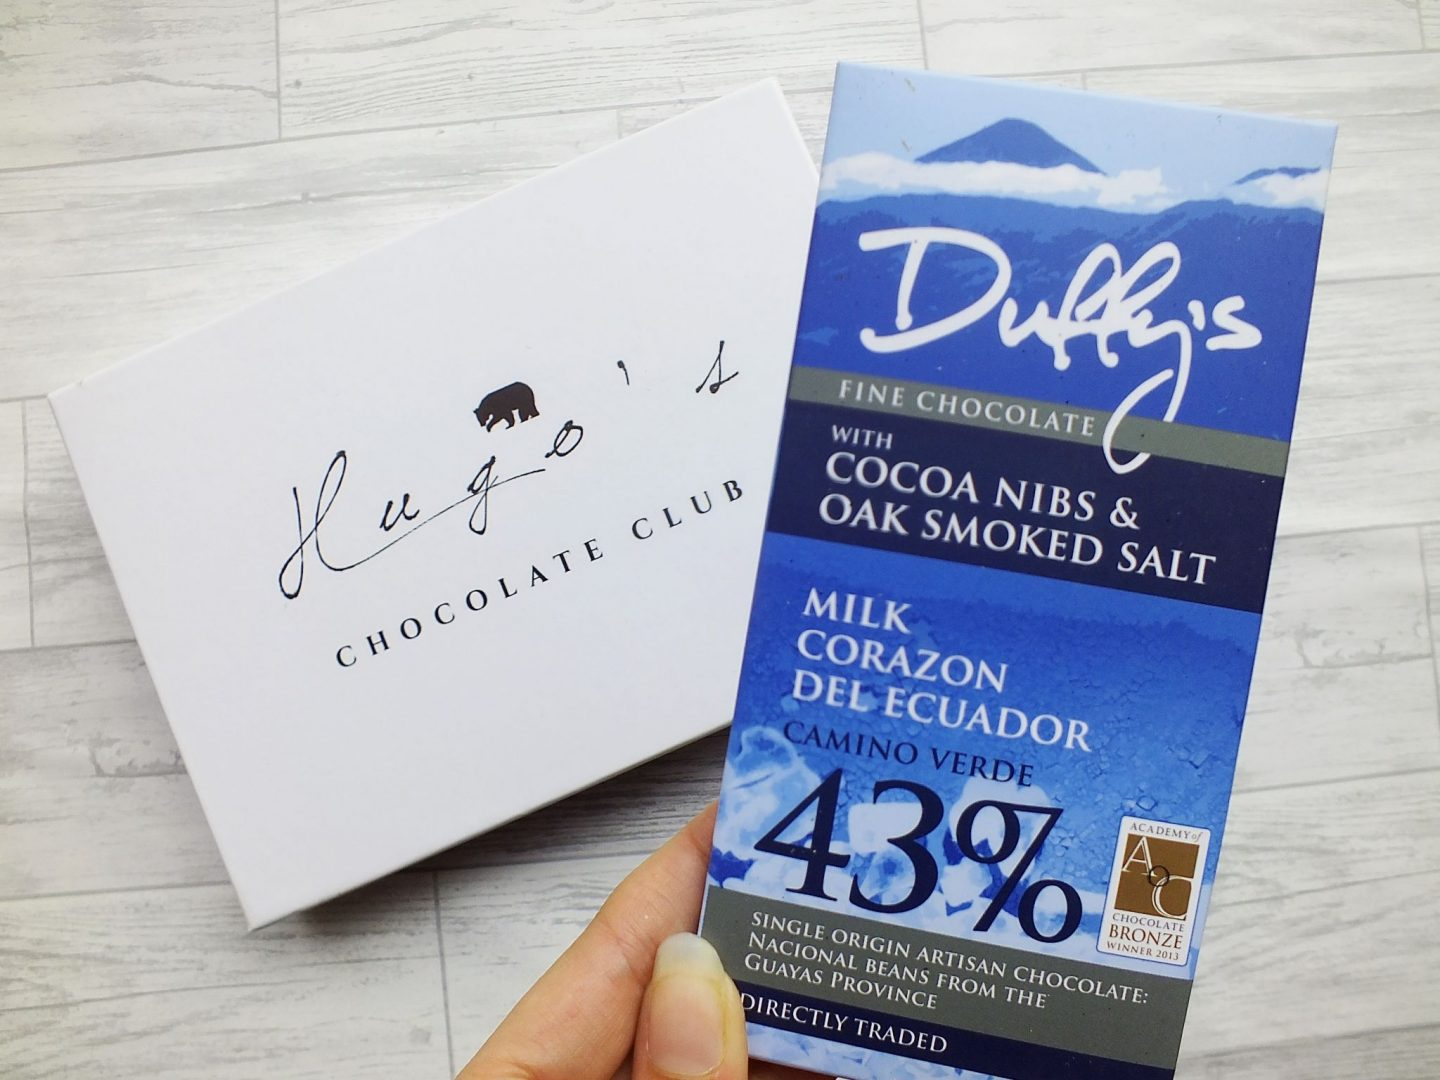 Duffys Cocoa Nibs and Oak Smoken Salt chocolate bar in blue wrapper being held up in front of Hugo's Chocolate Club box on grey wood background